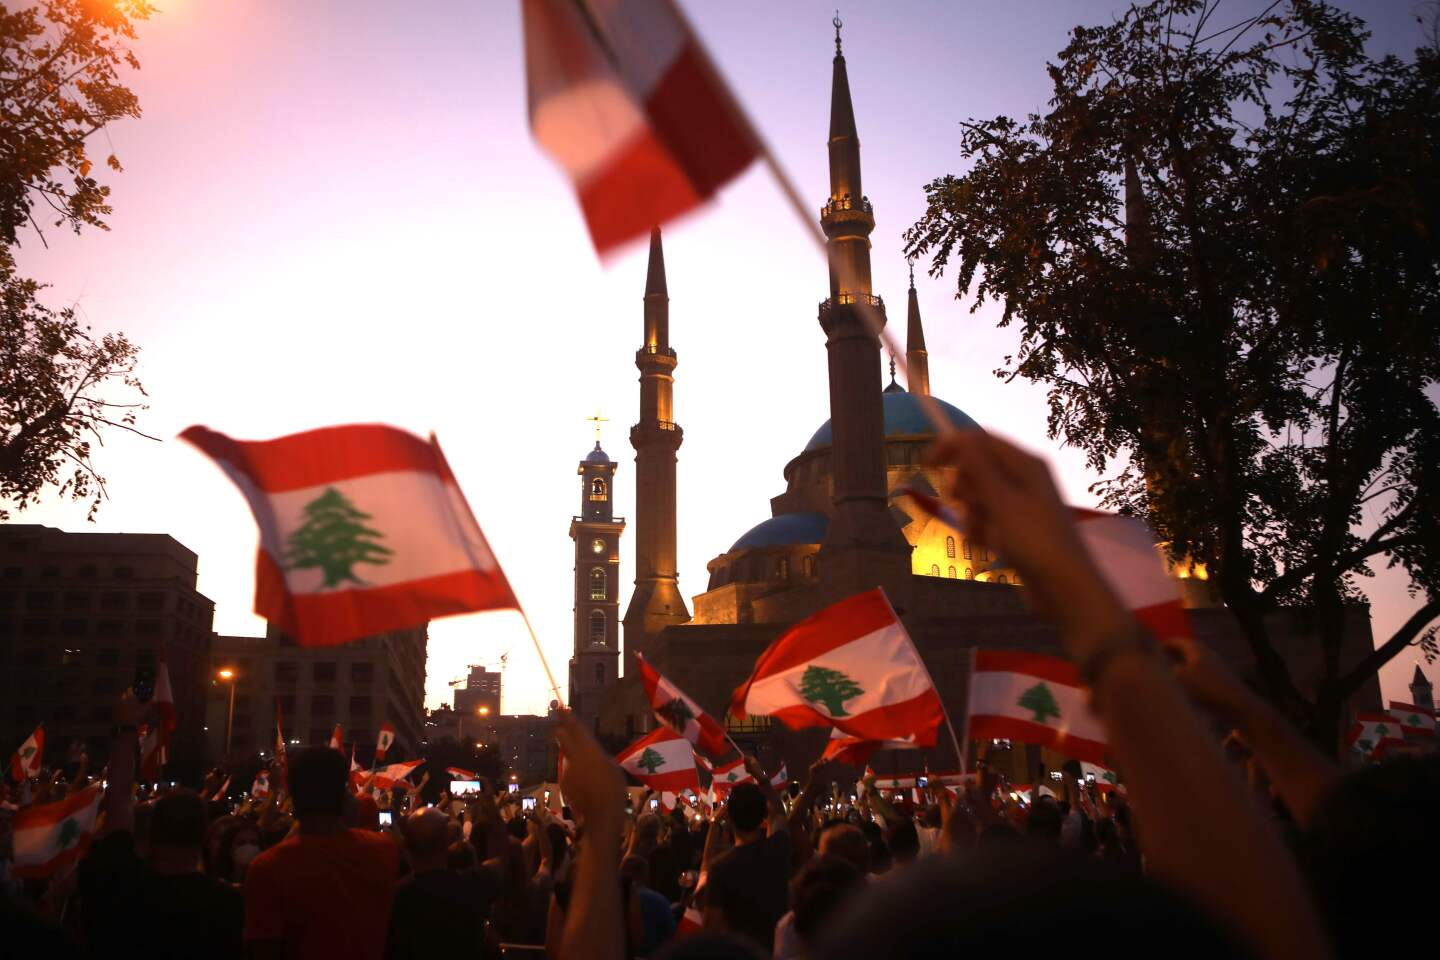 Lebanese demonstrators wave national flags as they take part in a protest in the capital Beirut, outside the Mohammad al-Amin mosque in the downtown district's Martyr's Square on October 19, 2019. - Tens of thousands of Lebanese people took to the streets today for a third day of protests against tax increases and alleged official corruption despite several arrests by security forces. (Photo by Patrick BAZ / AFP) (Photo by PATRICK BAZ/AFP via Getty Images) ** OUTS - ELSENT, FPG, CM - OUTS * NM, PH, VA if sourced by CT, LA or MoD **